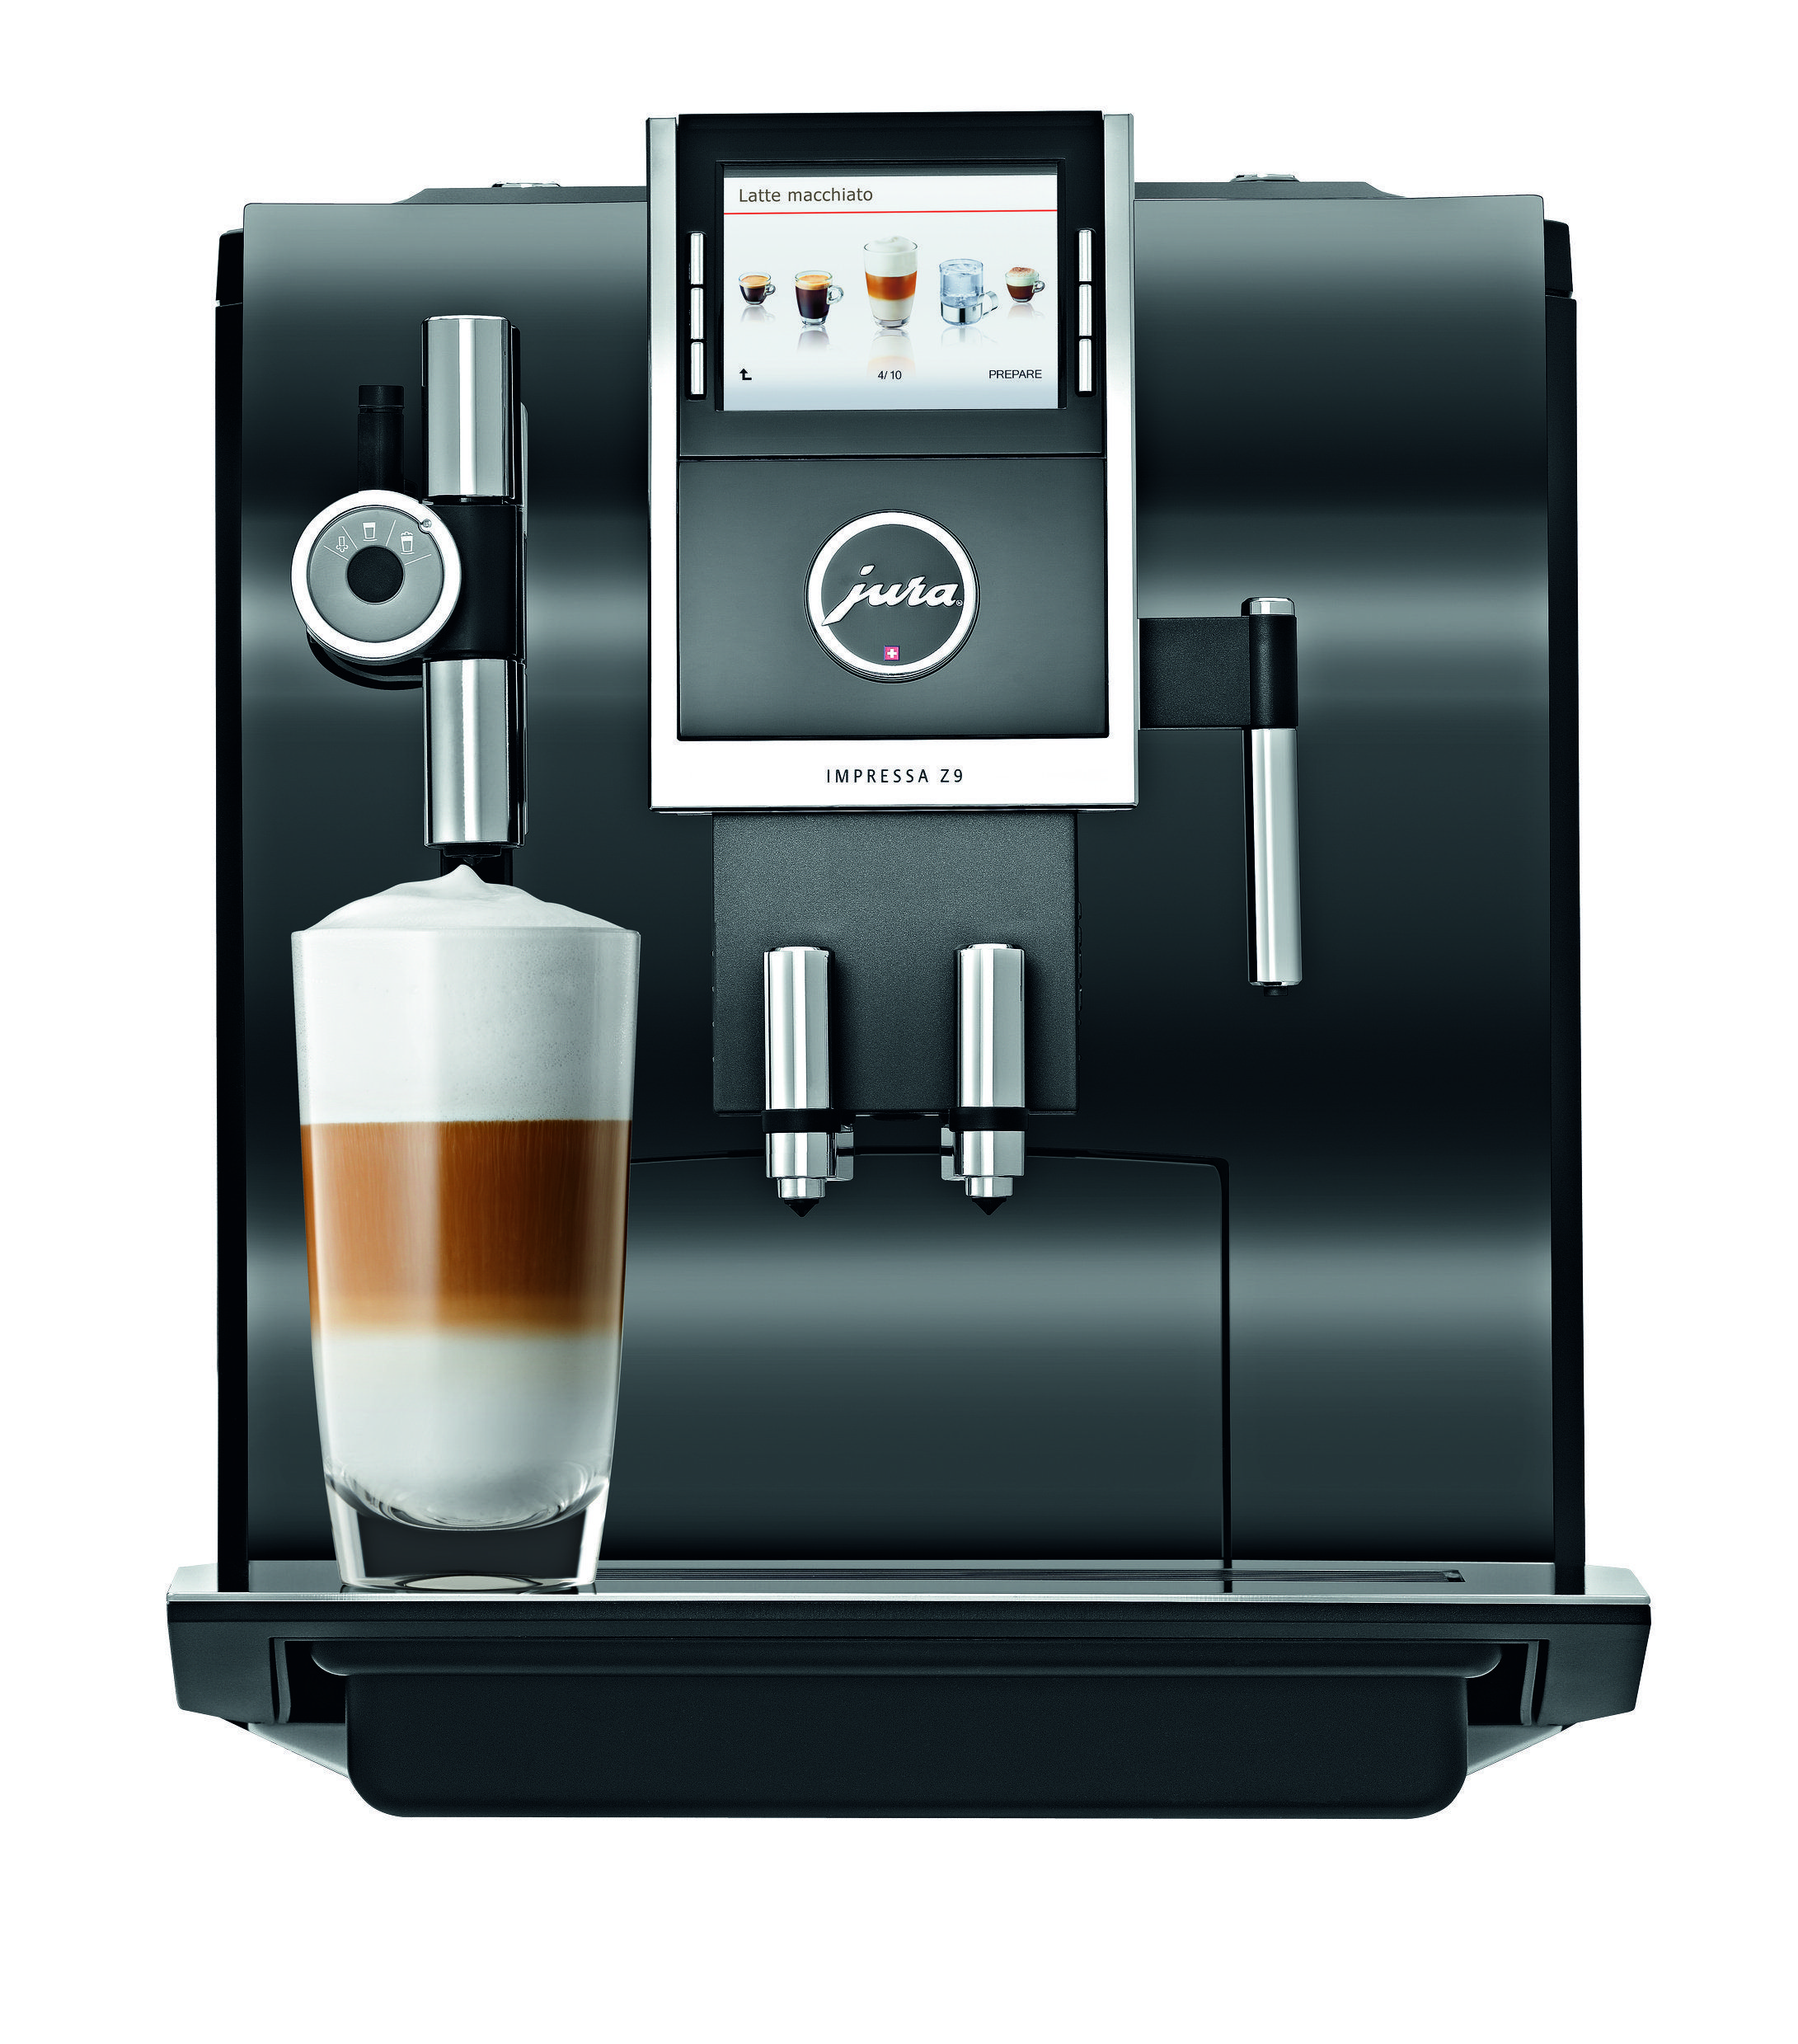 Refurbished Jura Z9 One Touch TFT Jura coffee machine